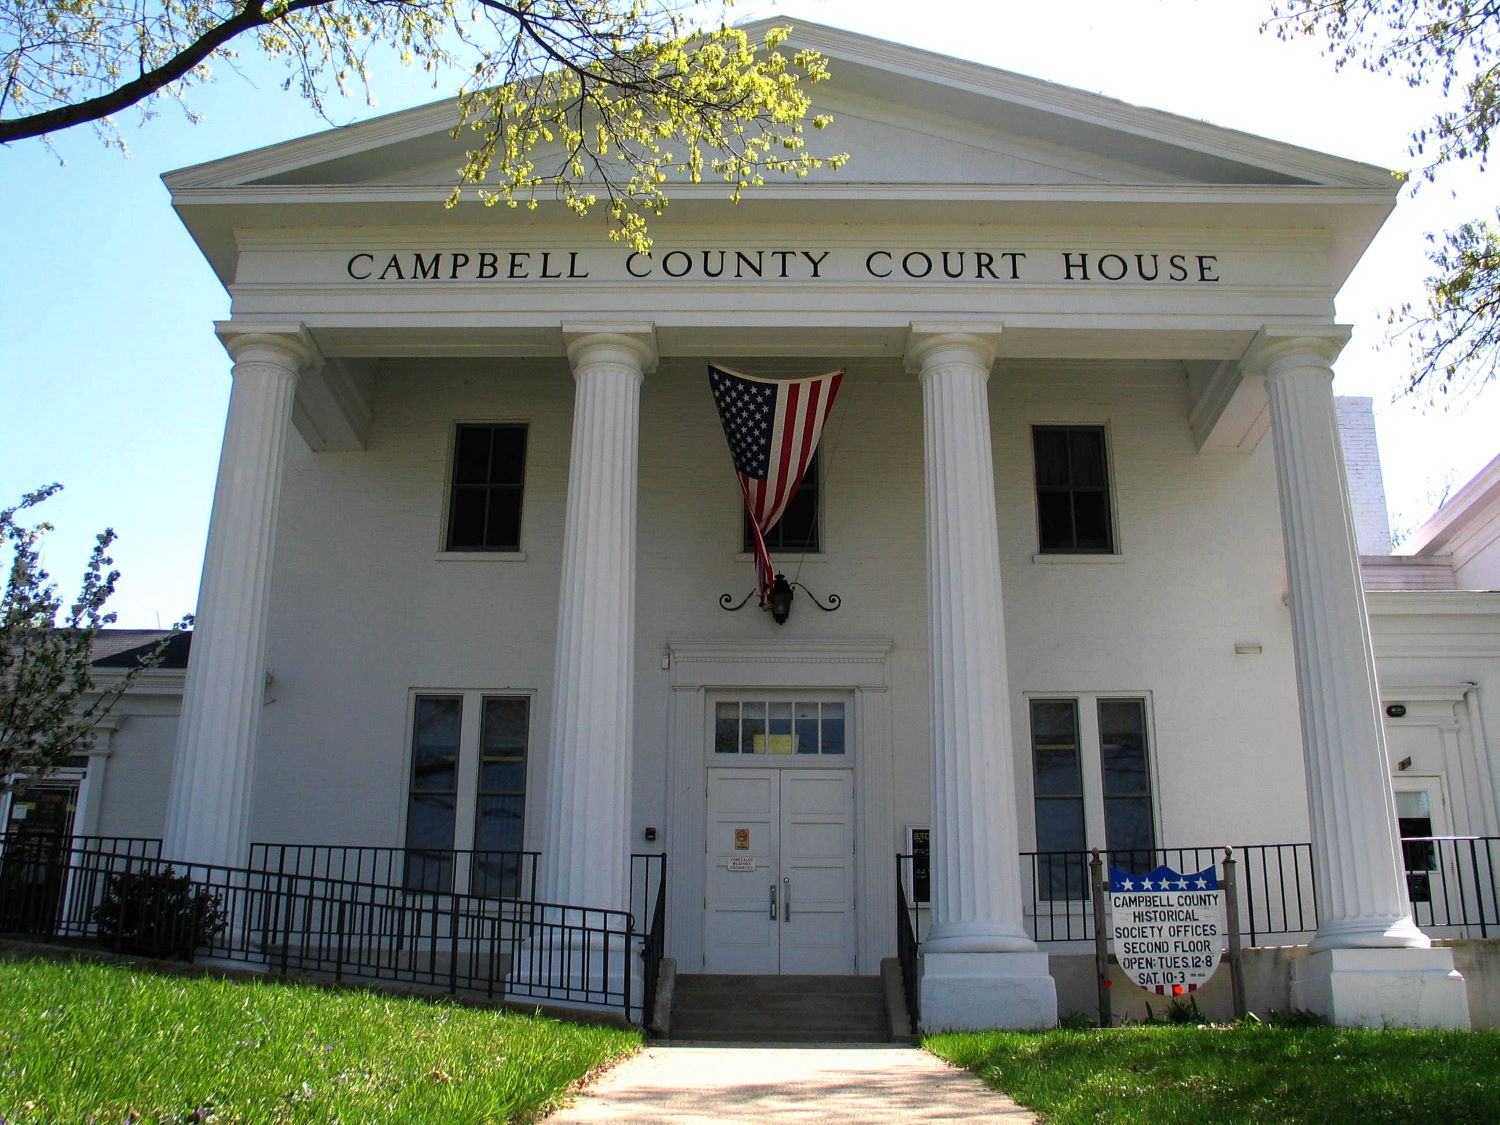 Campbell County Historical & Genealogical Society